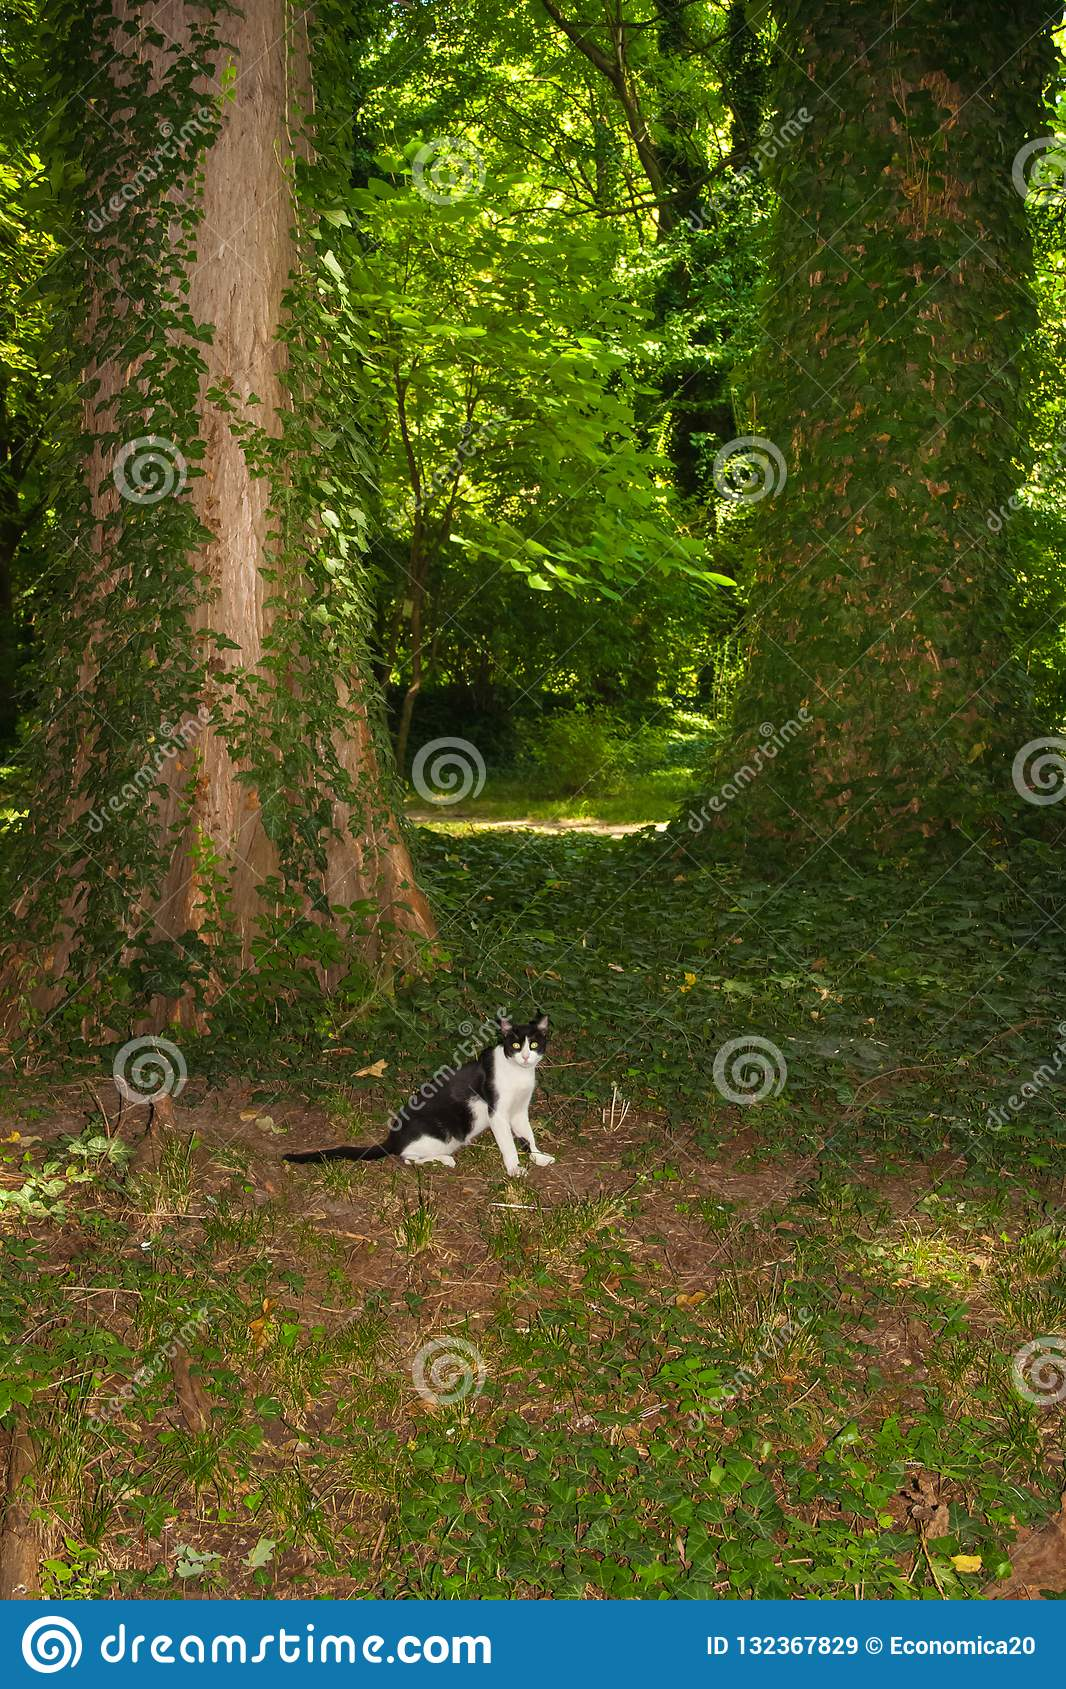 Domestic cat explore the forest